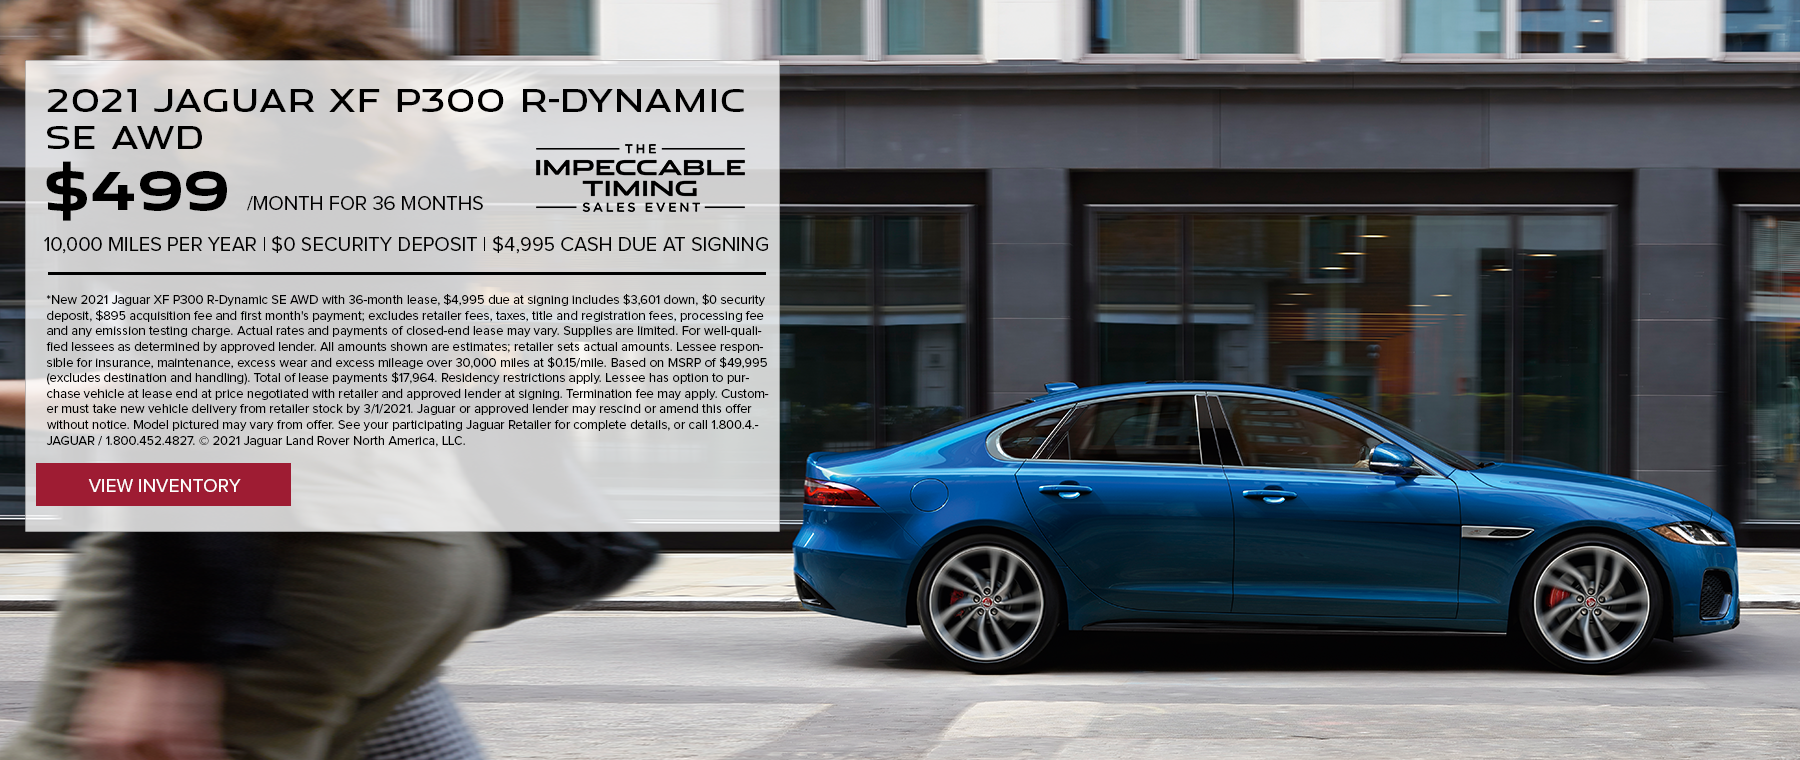 NEW 2021 JAGUAR XF P300 R-DYNAMIC SE AWD. $499 PER MONTH. 36 MONTH LEASE TERM. $4,995 CASH DUE AT SIGNING. $0 SECURITY DEPOSIT. 10,000 MILES PER YEAR. EXCLUDES RETAILER FEES, TAXES, TITLE AND REGISTRATION FEES, PROCESSING FEE AND ANY EMISSION TESTING CHARGE. OFFER ENDS 3/1/2021.